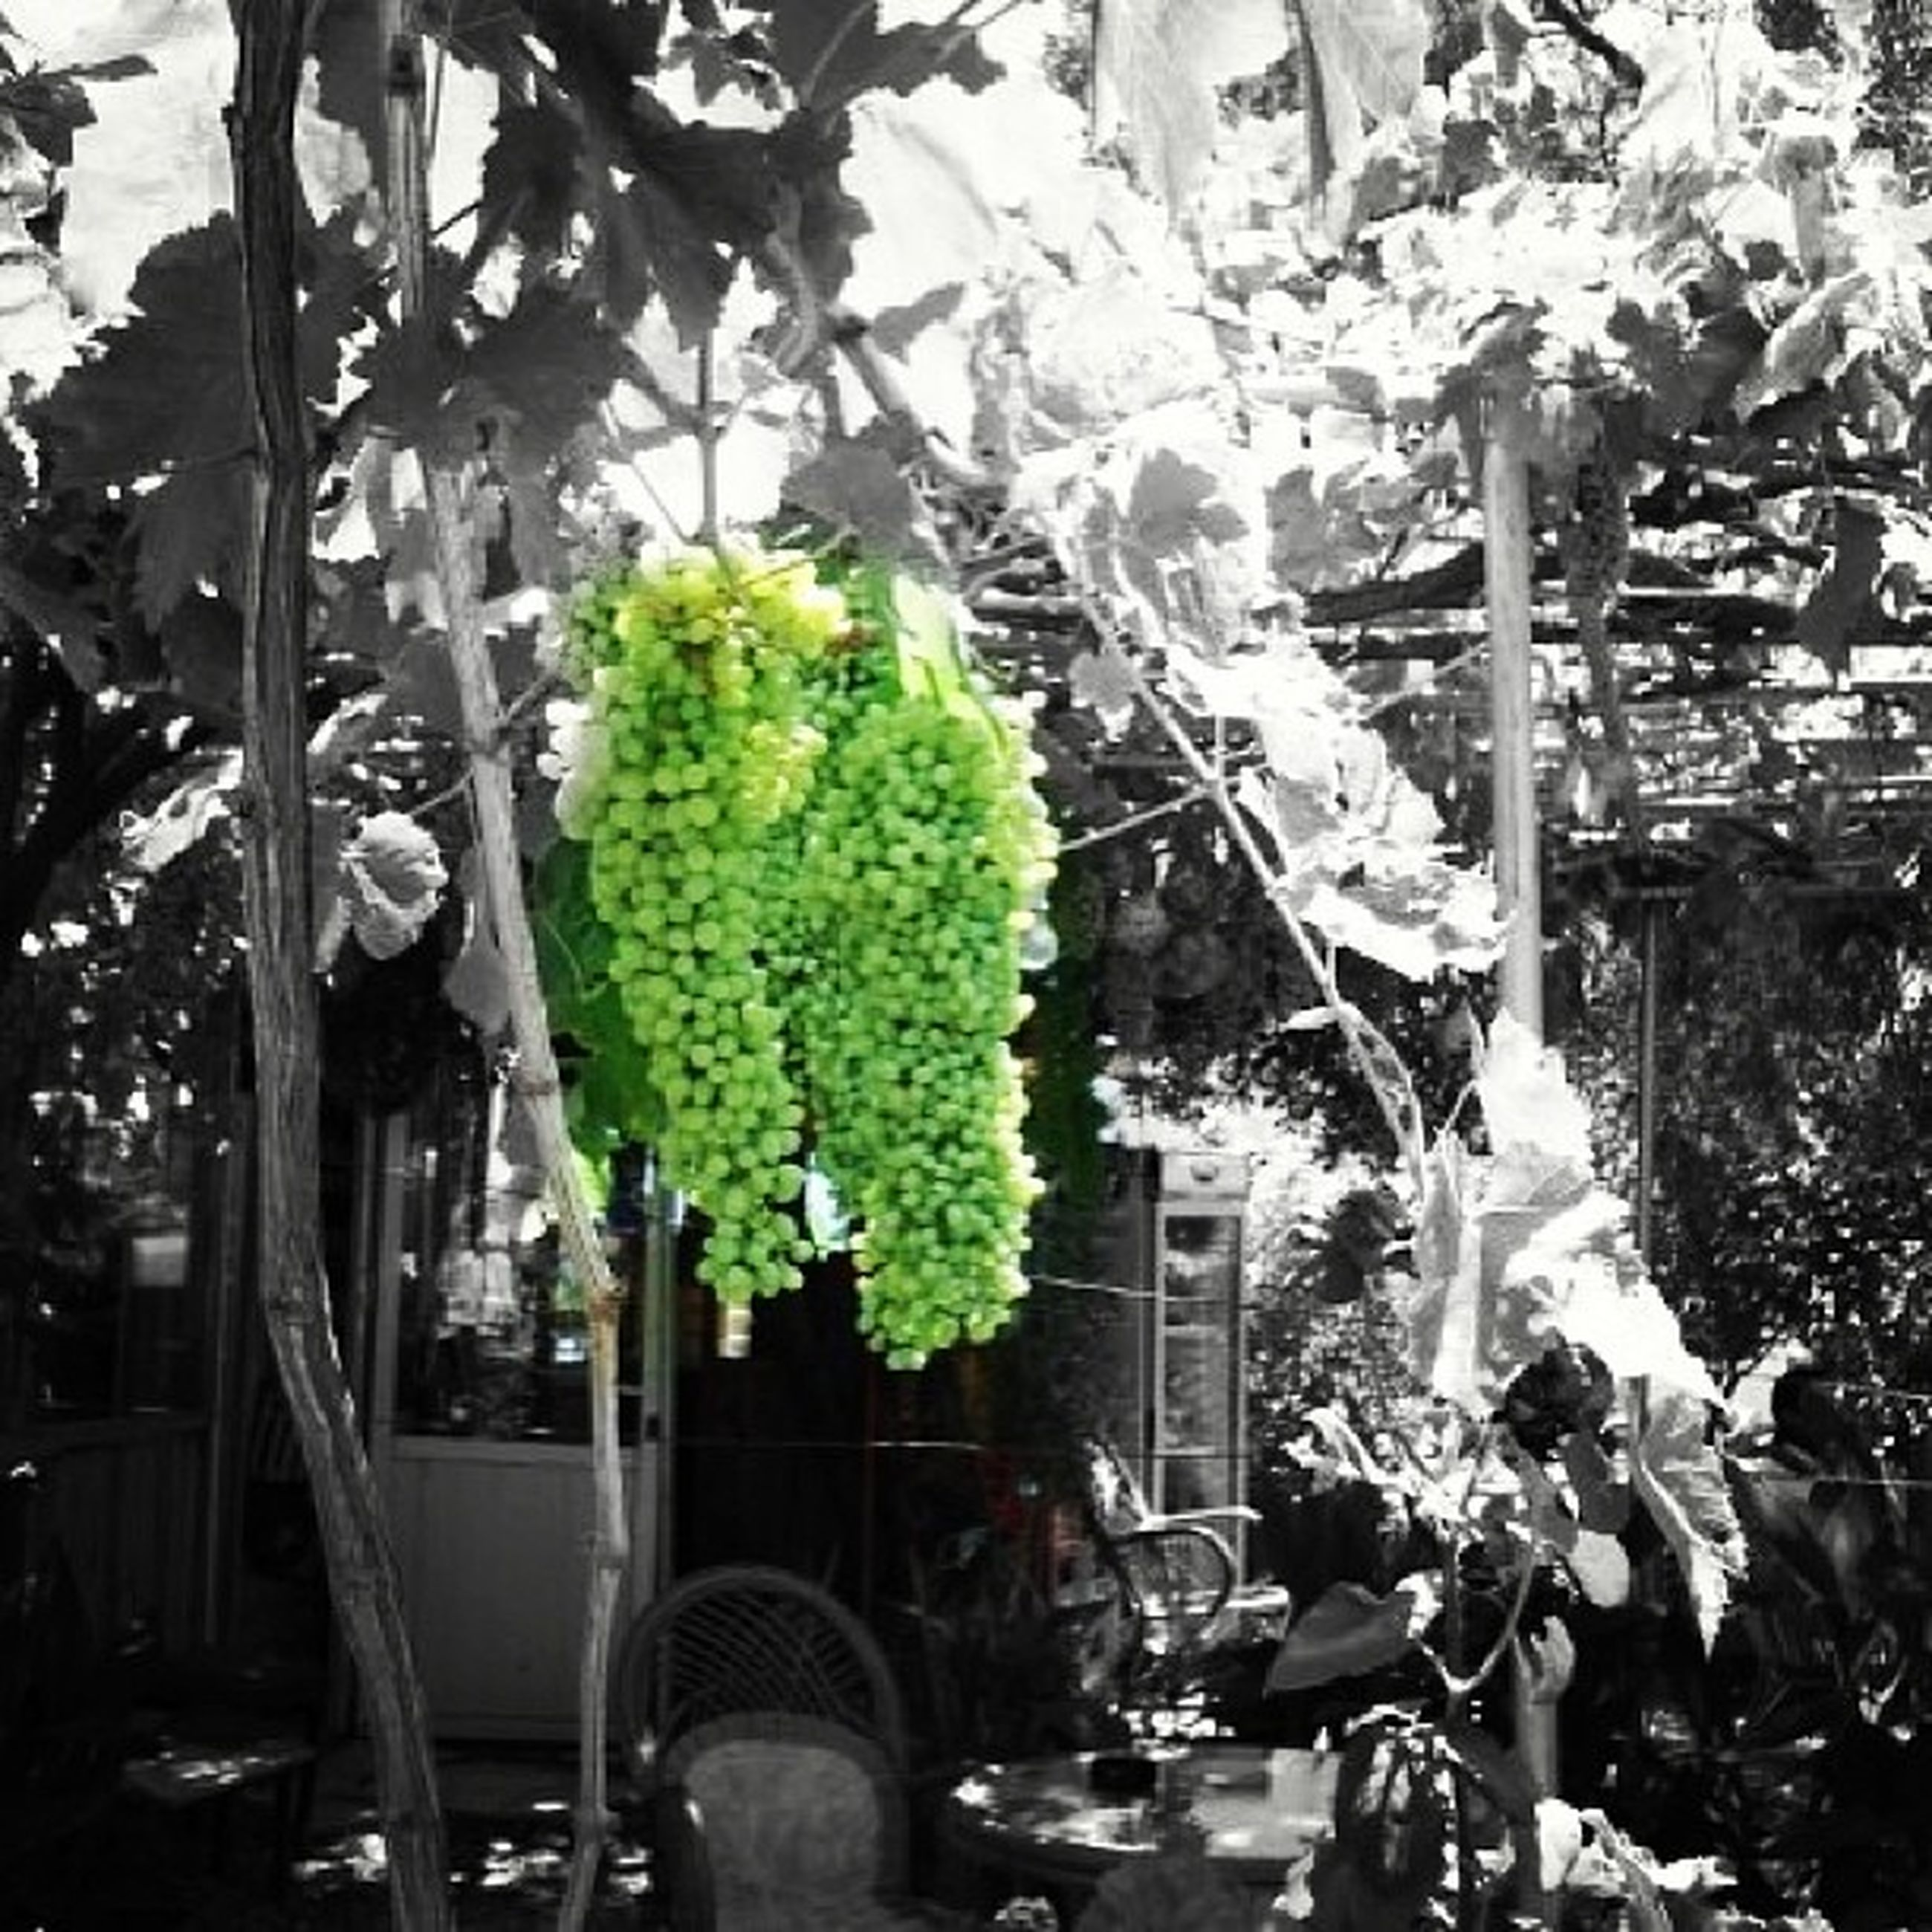 tree, growth, men, leaf, potted plant, person, lifestyles, plant, green color, leisure activity, outdoors, day, nature, large group of people, sunlight, incidental people, chair, street, abundance